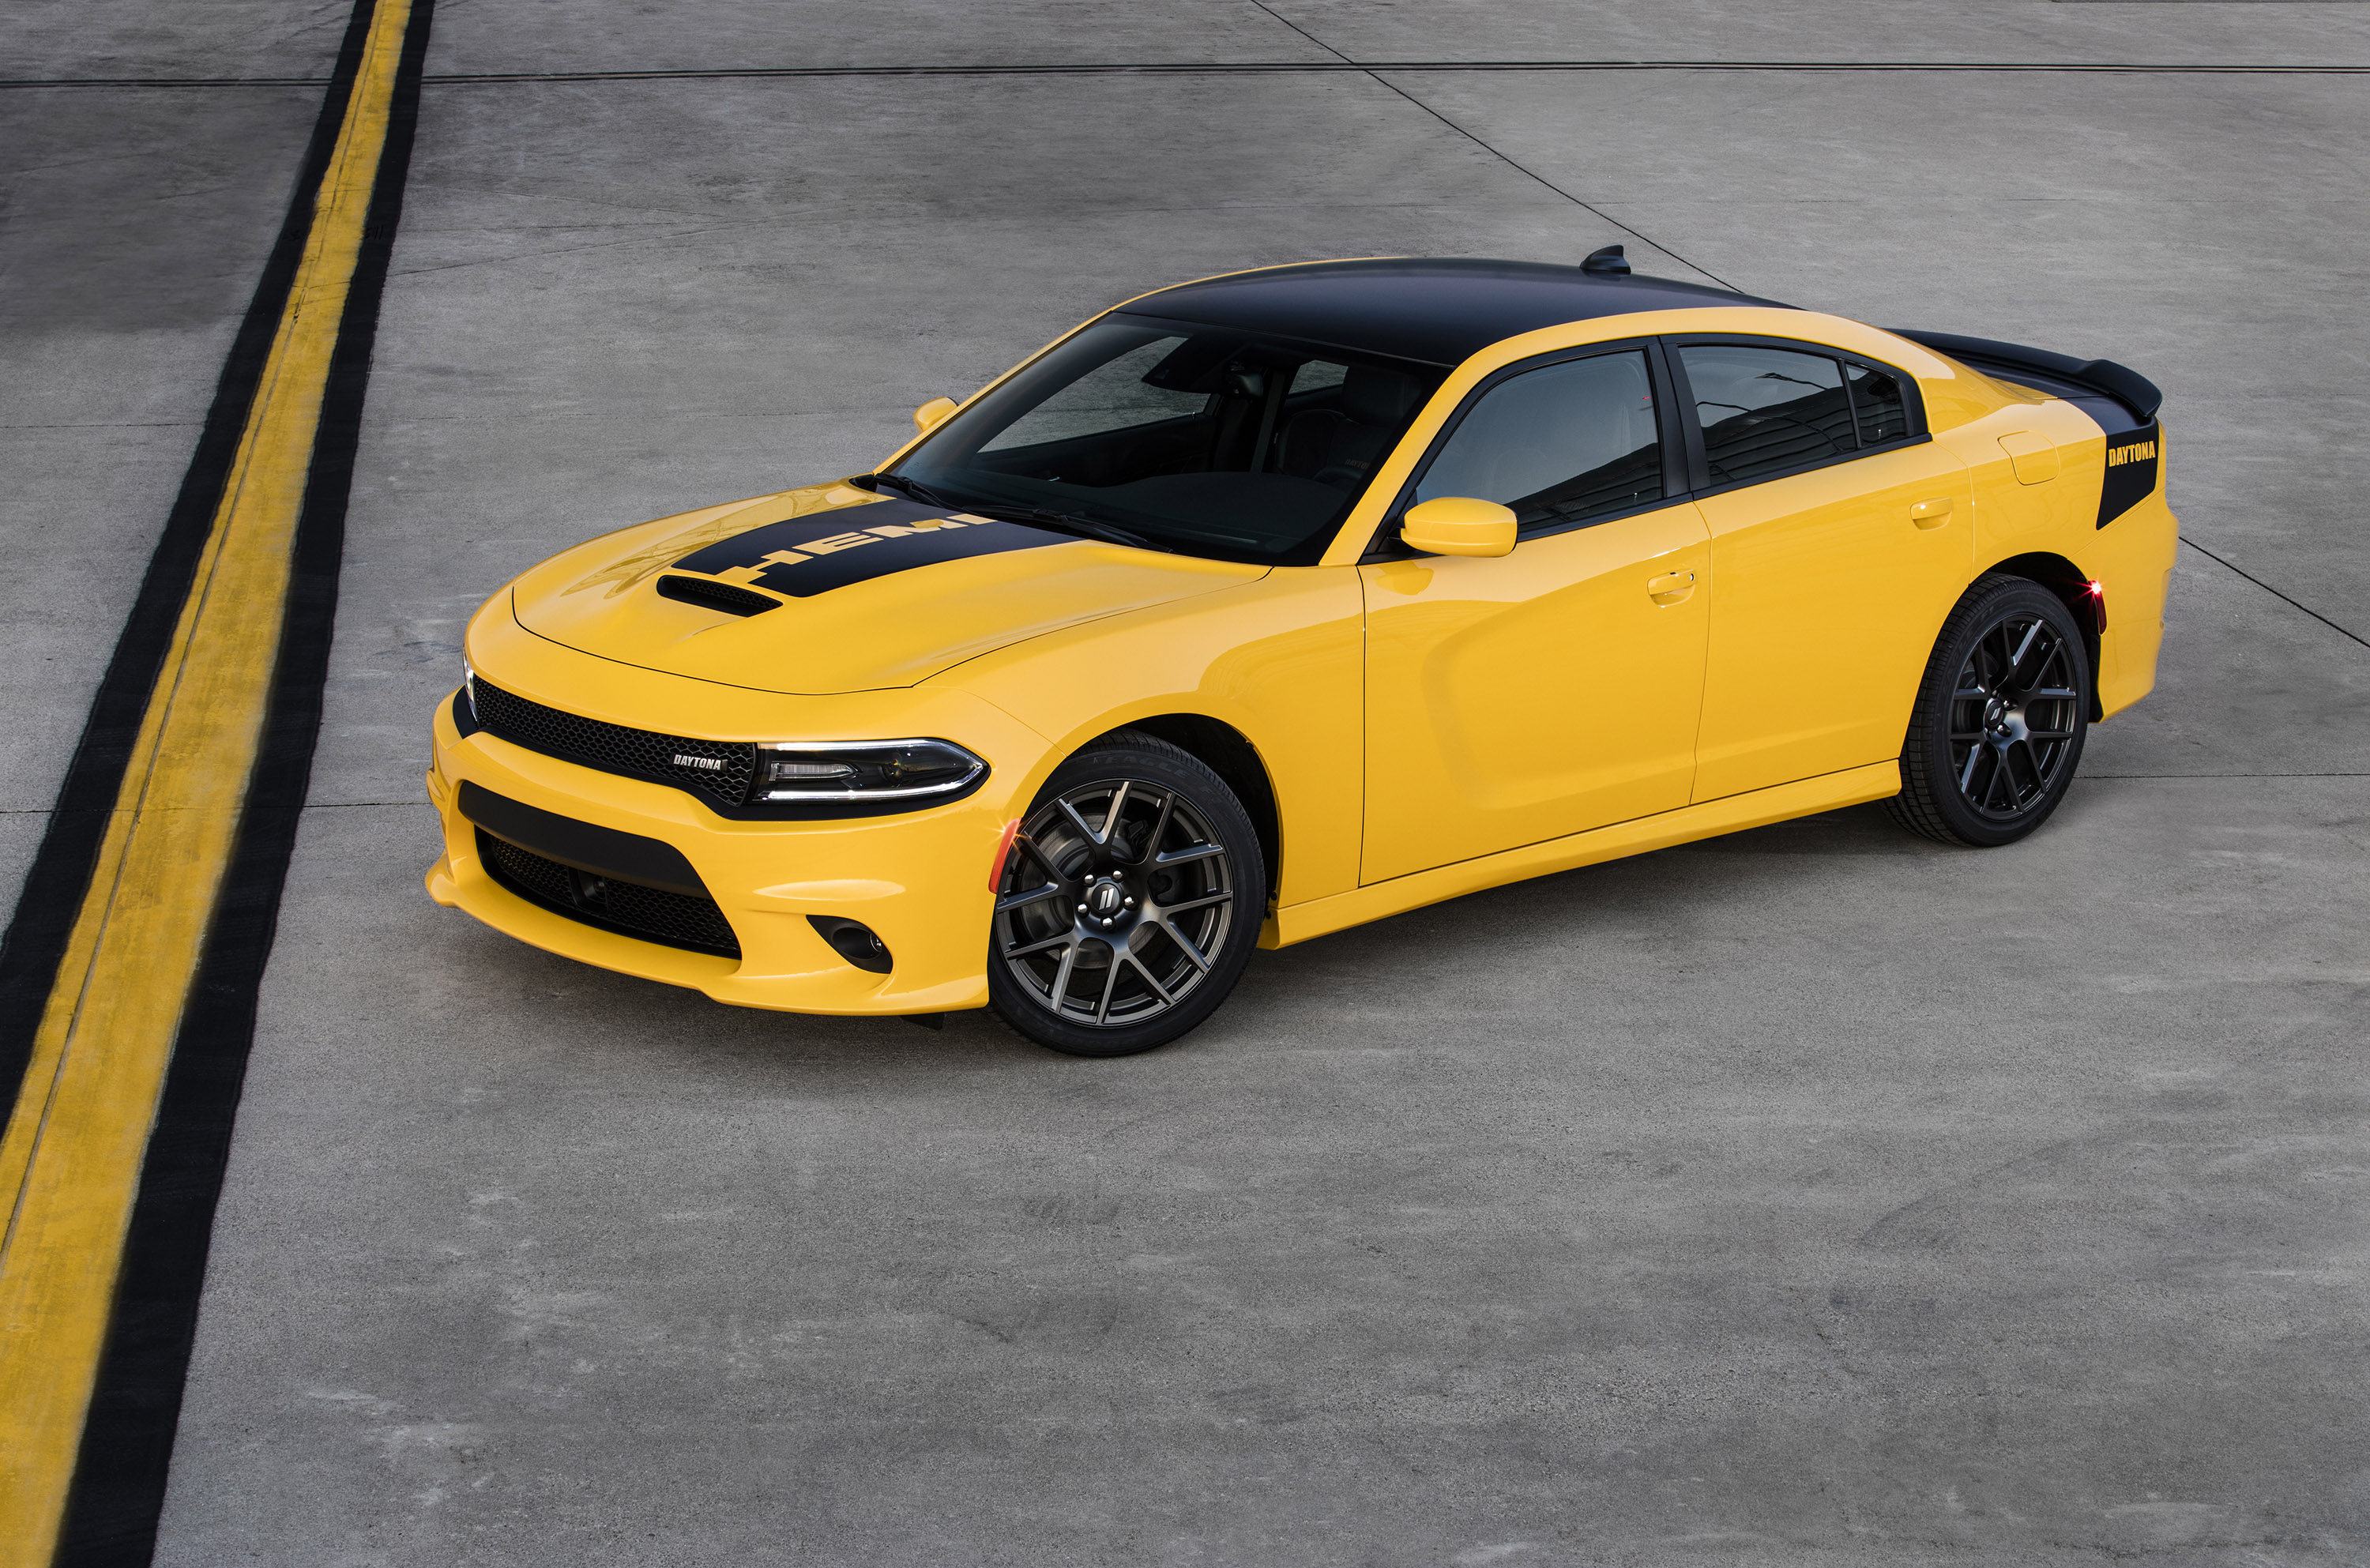 2017 dodge charger daytona and dodge challenger t a models revealed. Black Bedroom Furniture Sets. Home Design Ideas